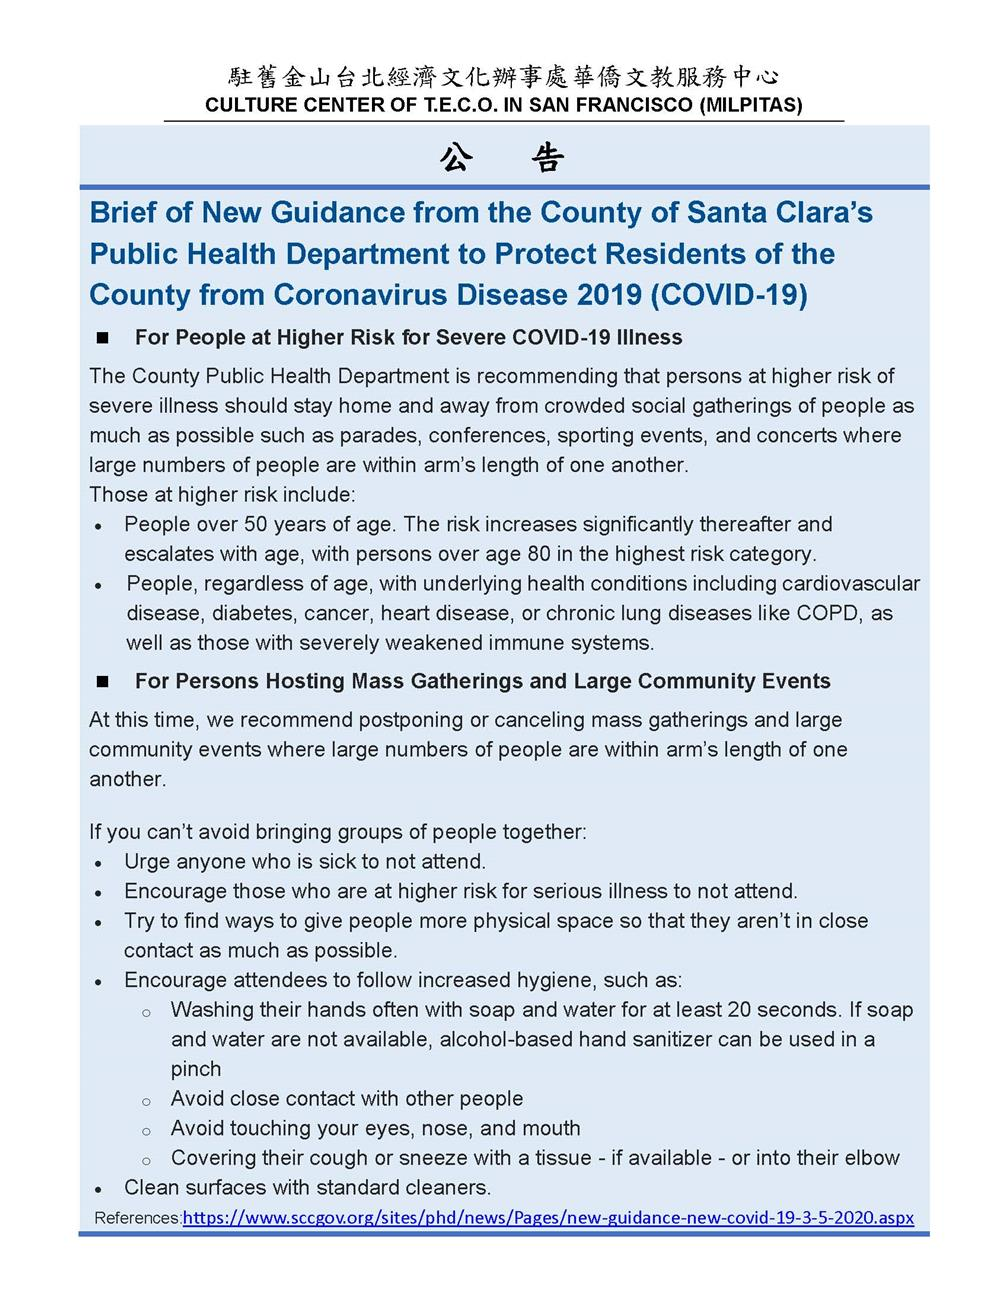 Brief of New Guidance from the County of Santa Clara.jpg